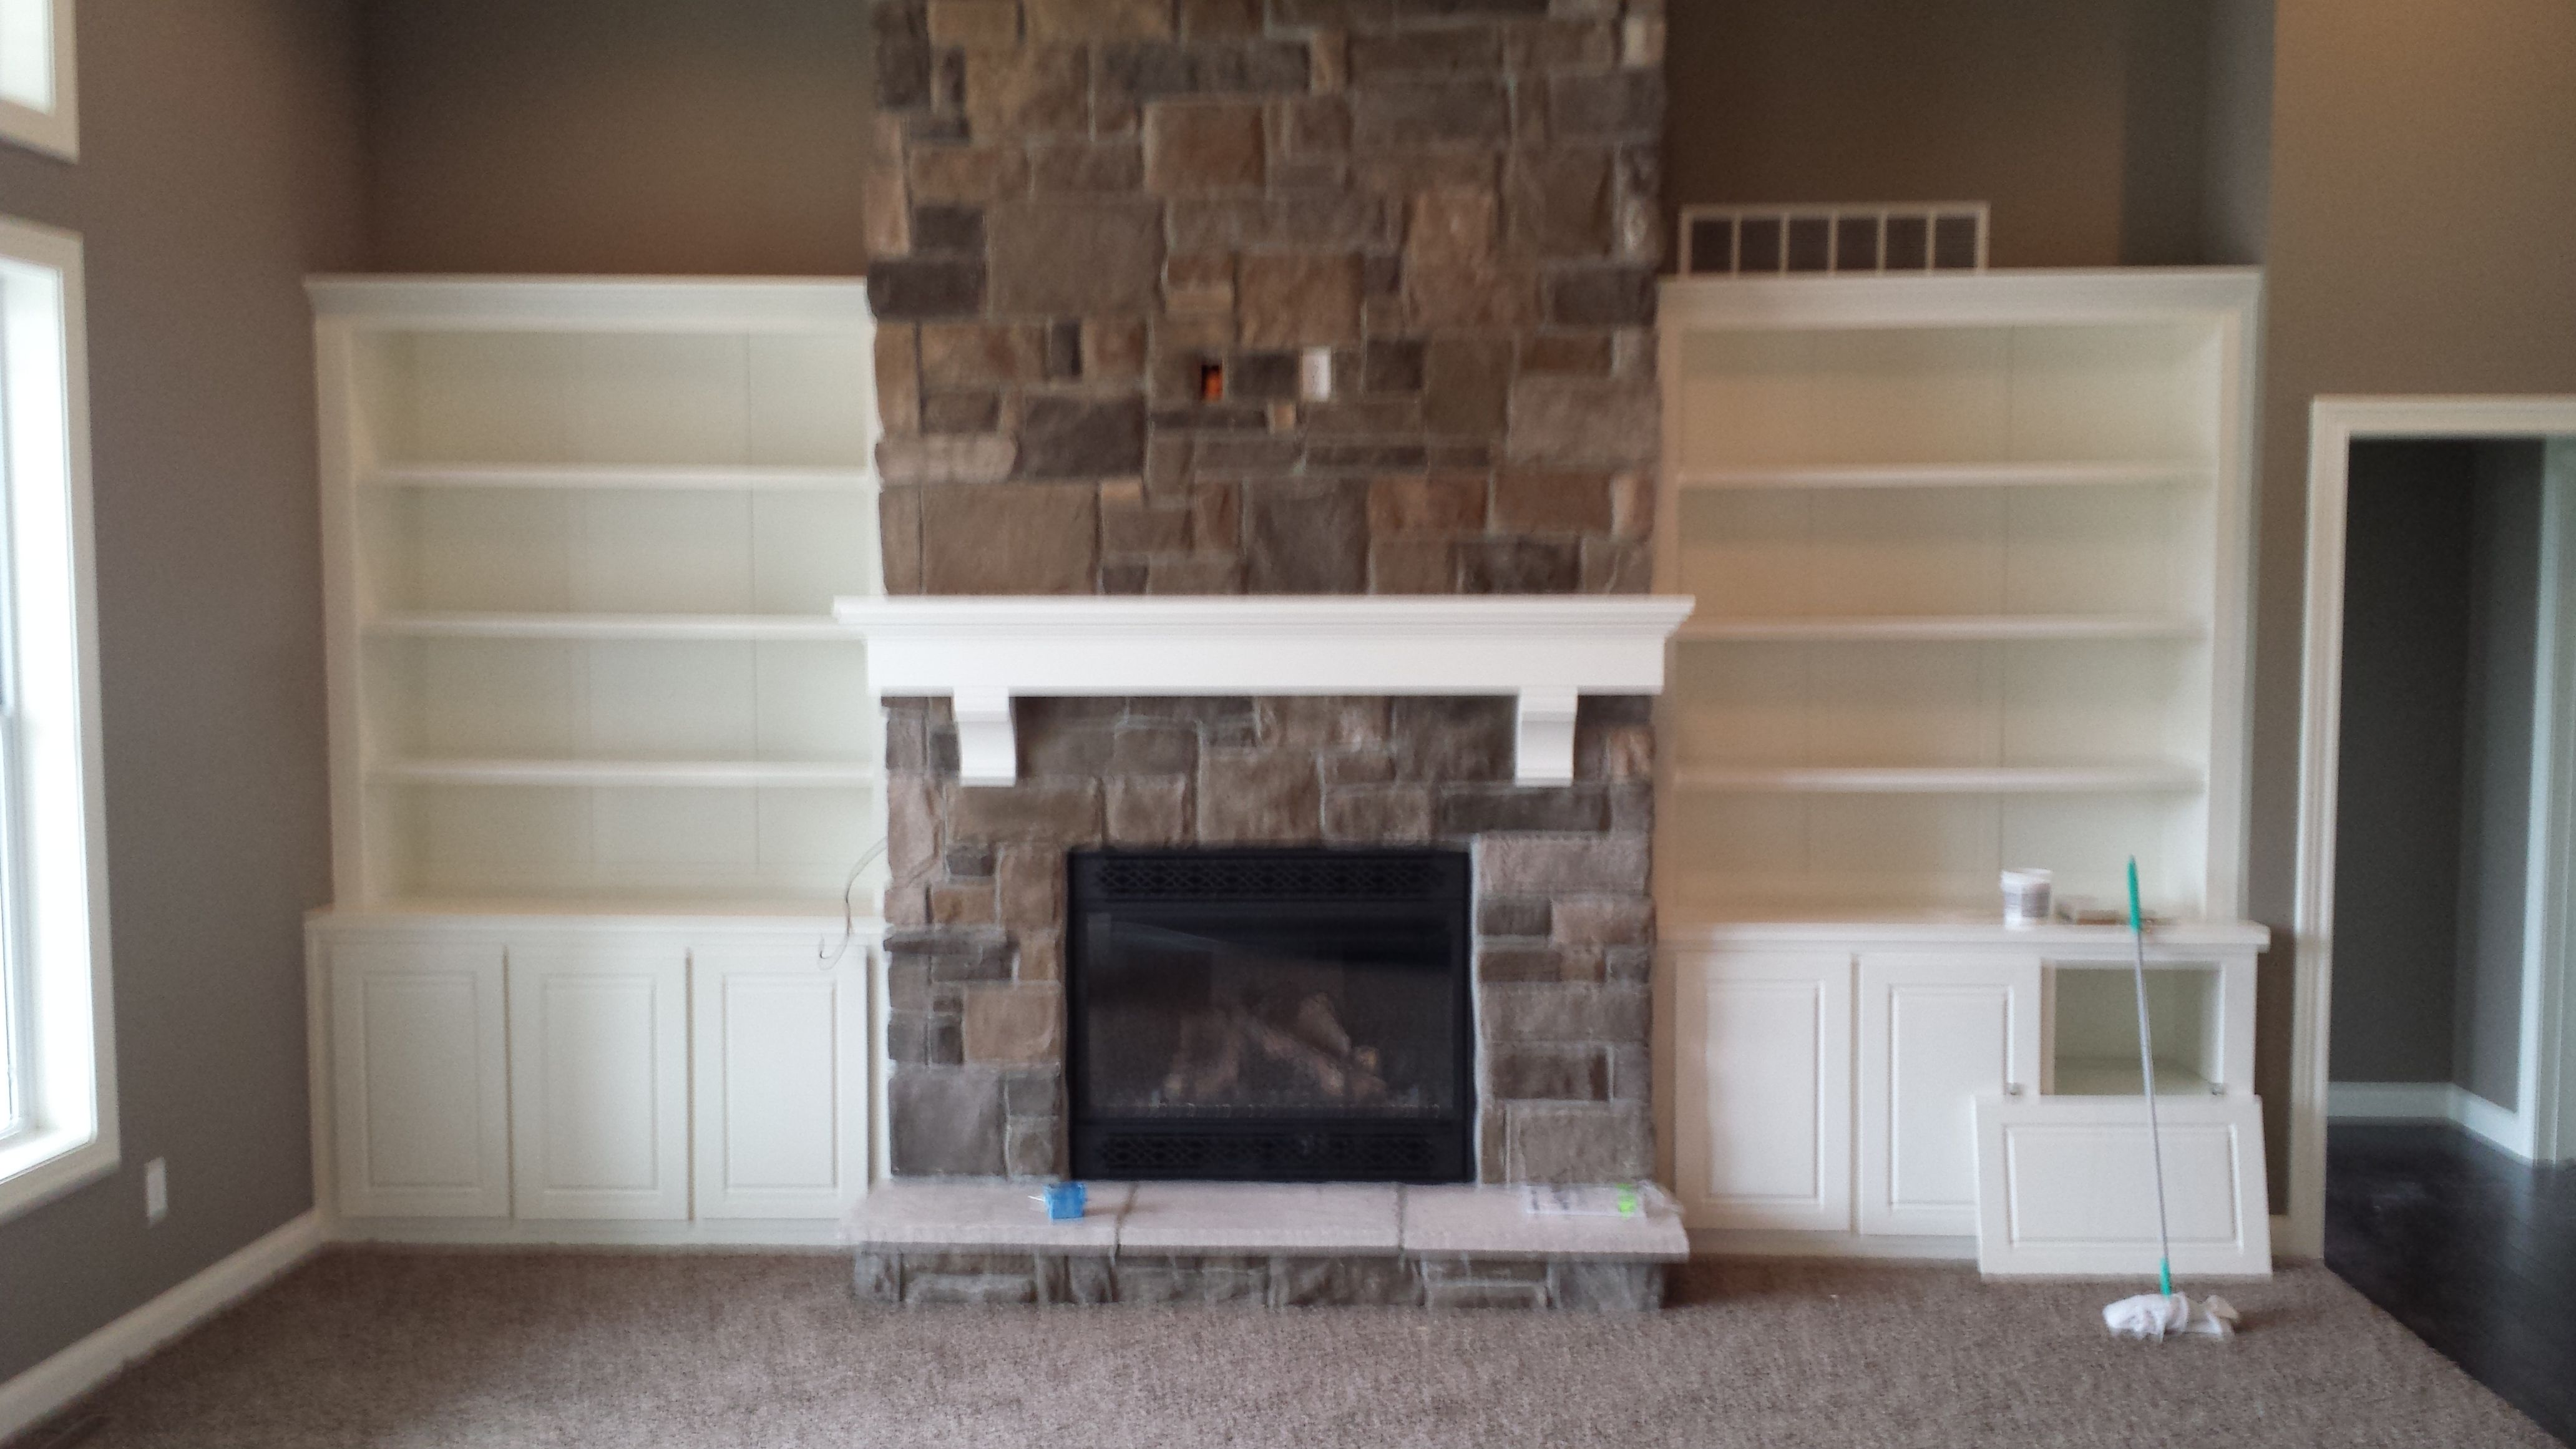 Custom Wood Built Ins Around Fireplace With Shelving And Cabinets